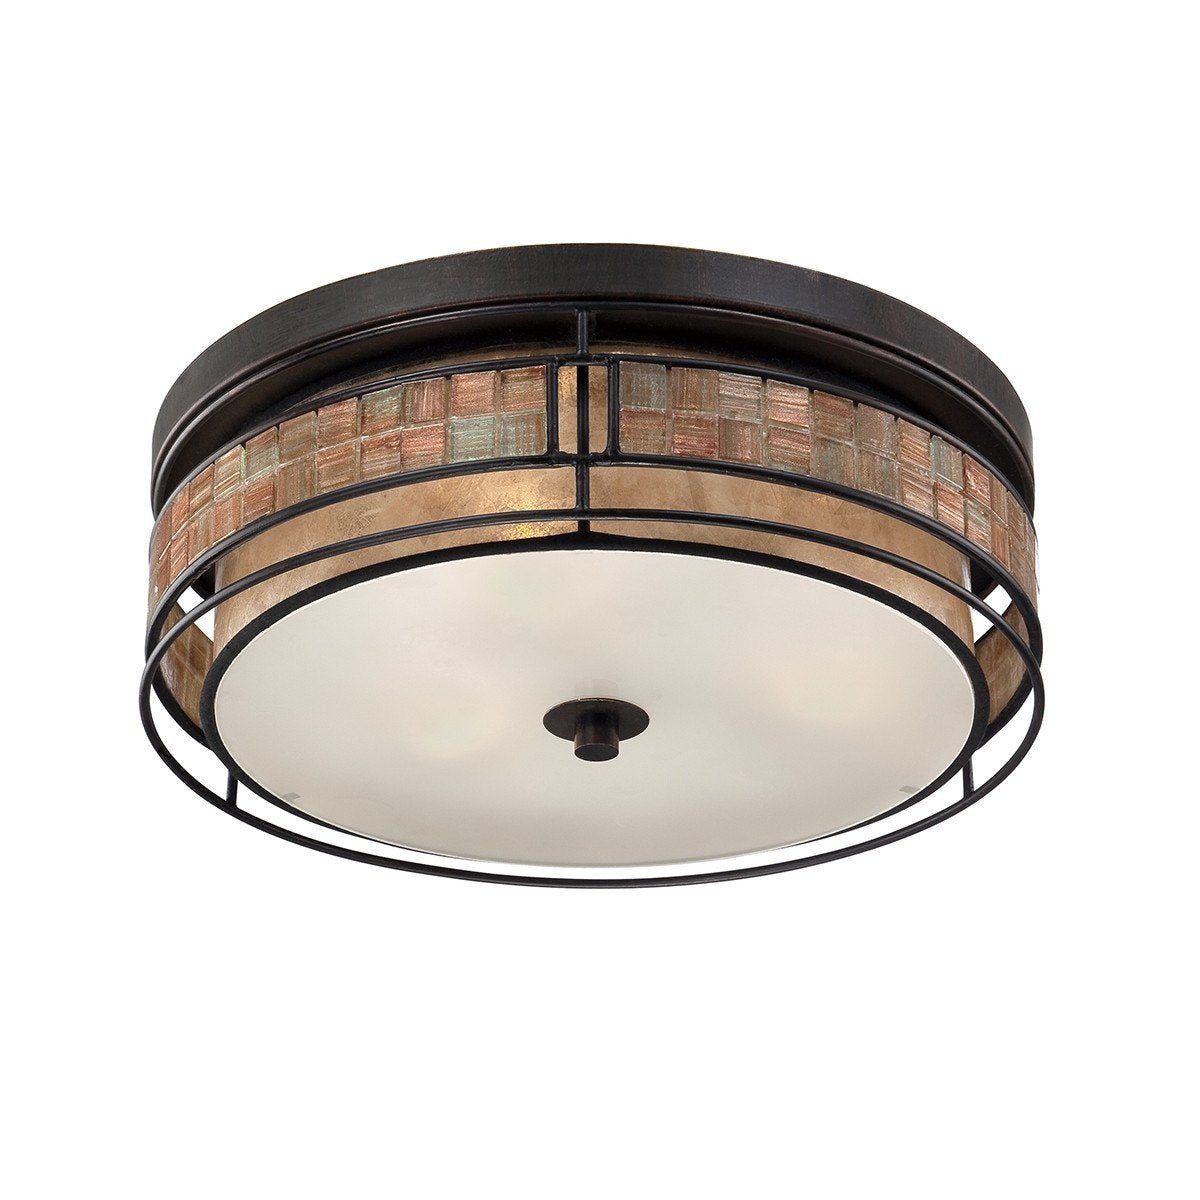 Quoizel Laguna Large Flush Mount - London Lighting - 1